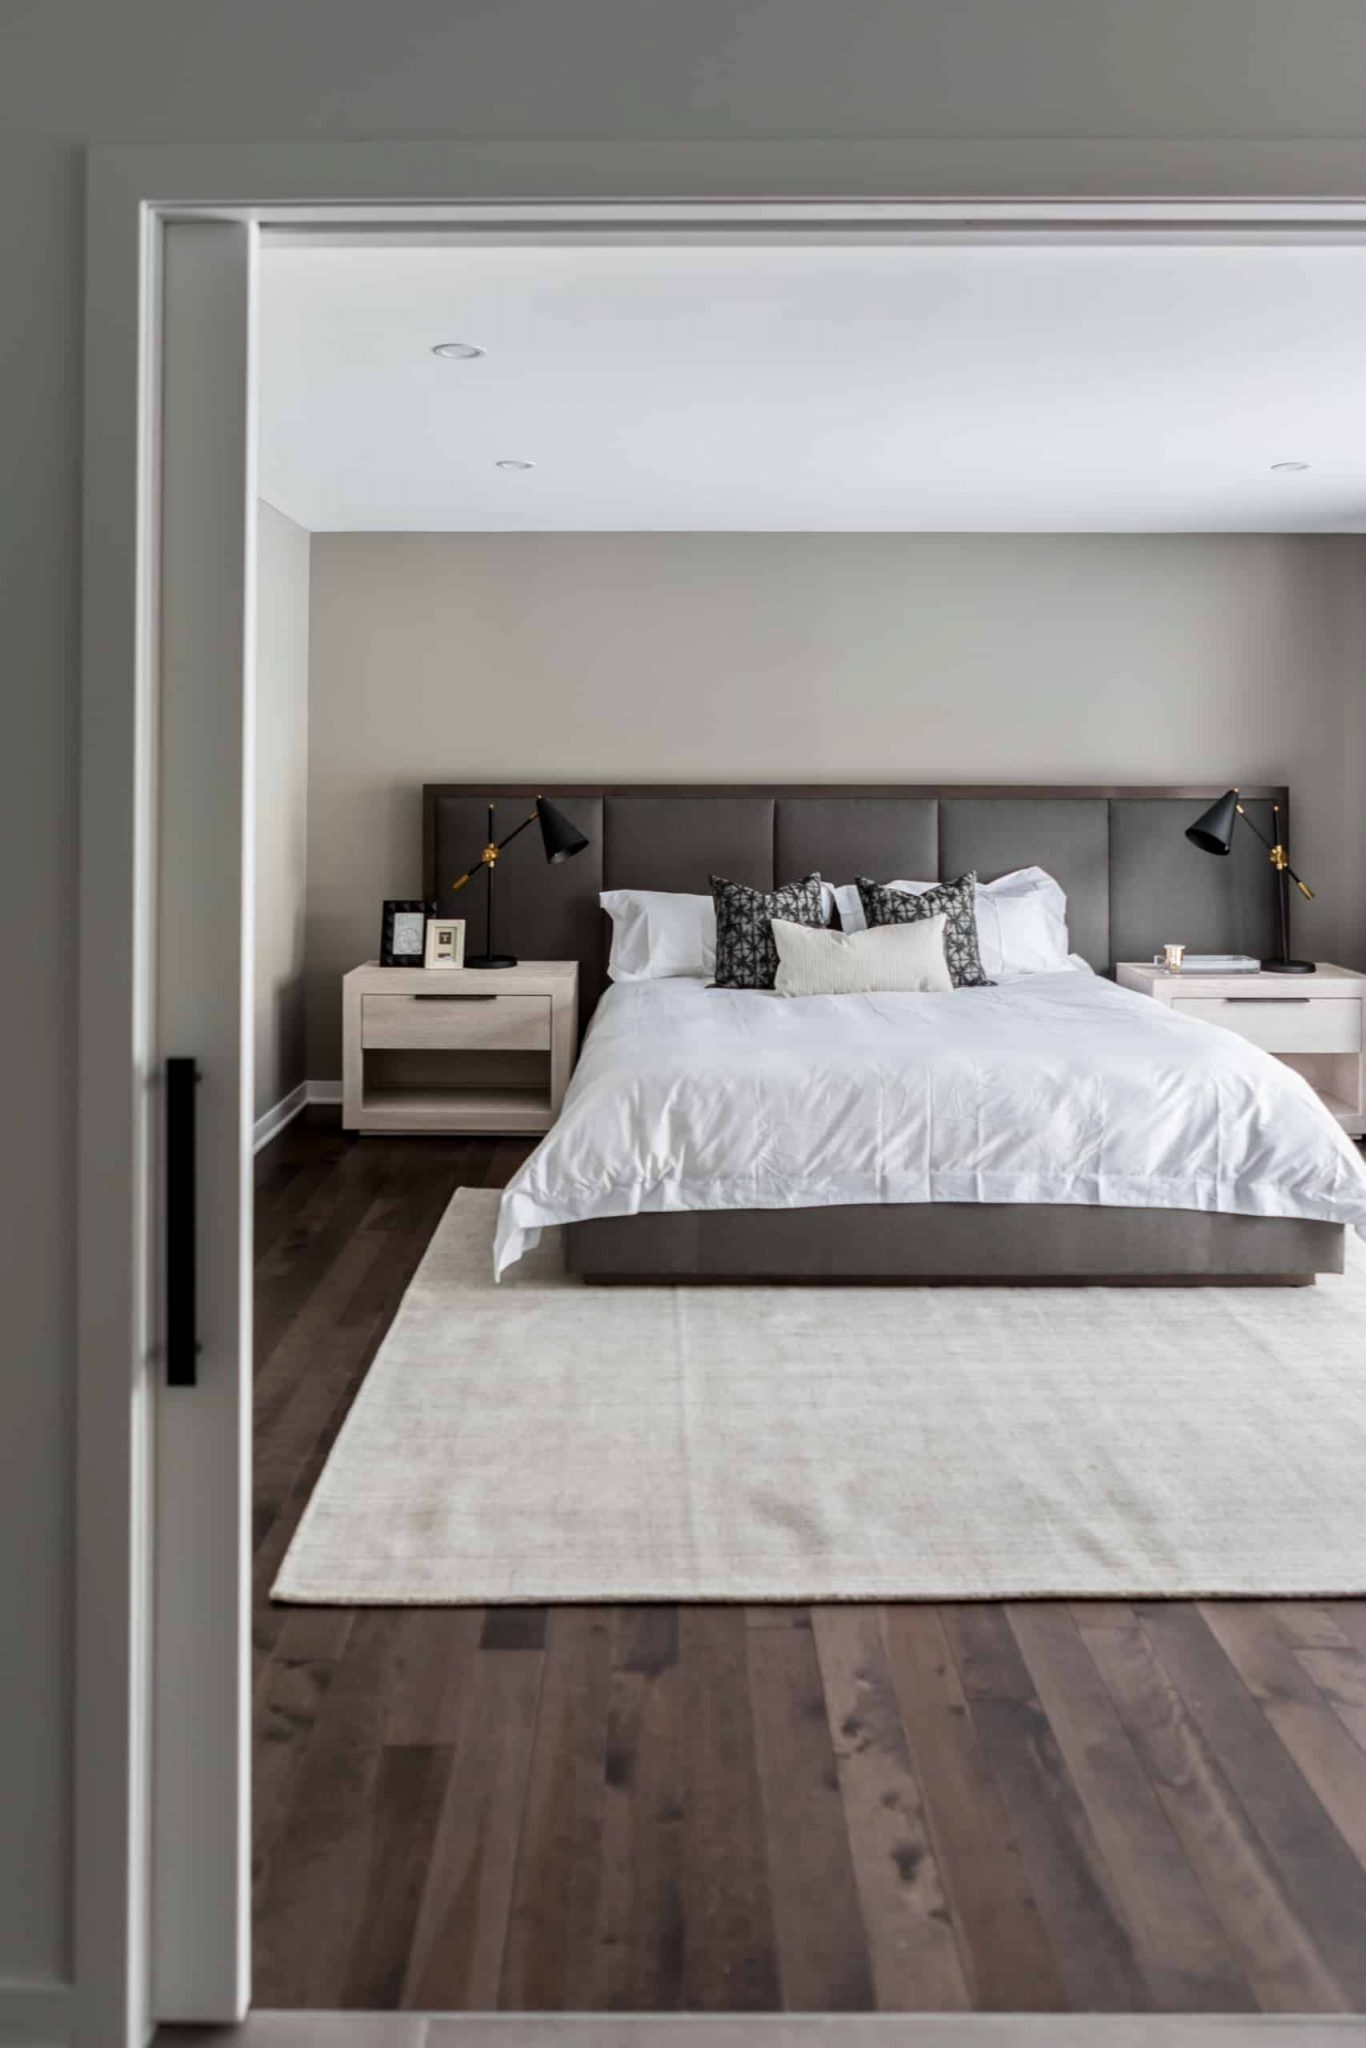 Large, open master bedroom with a massive bed